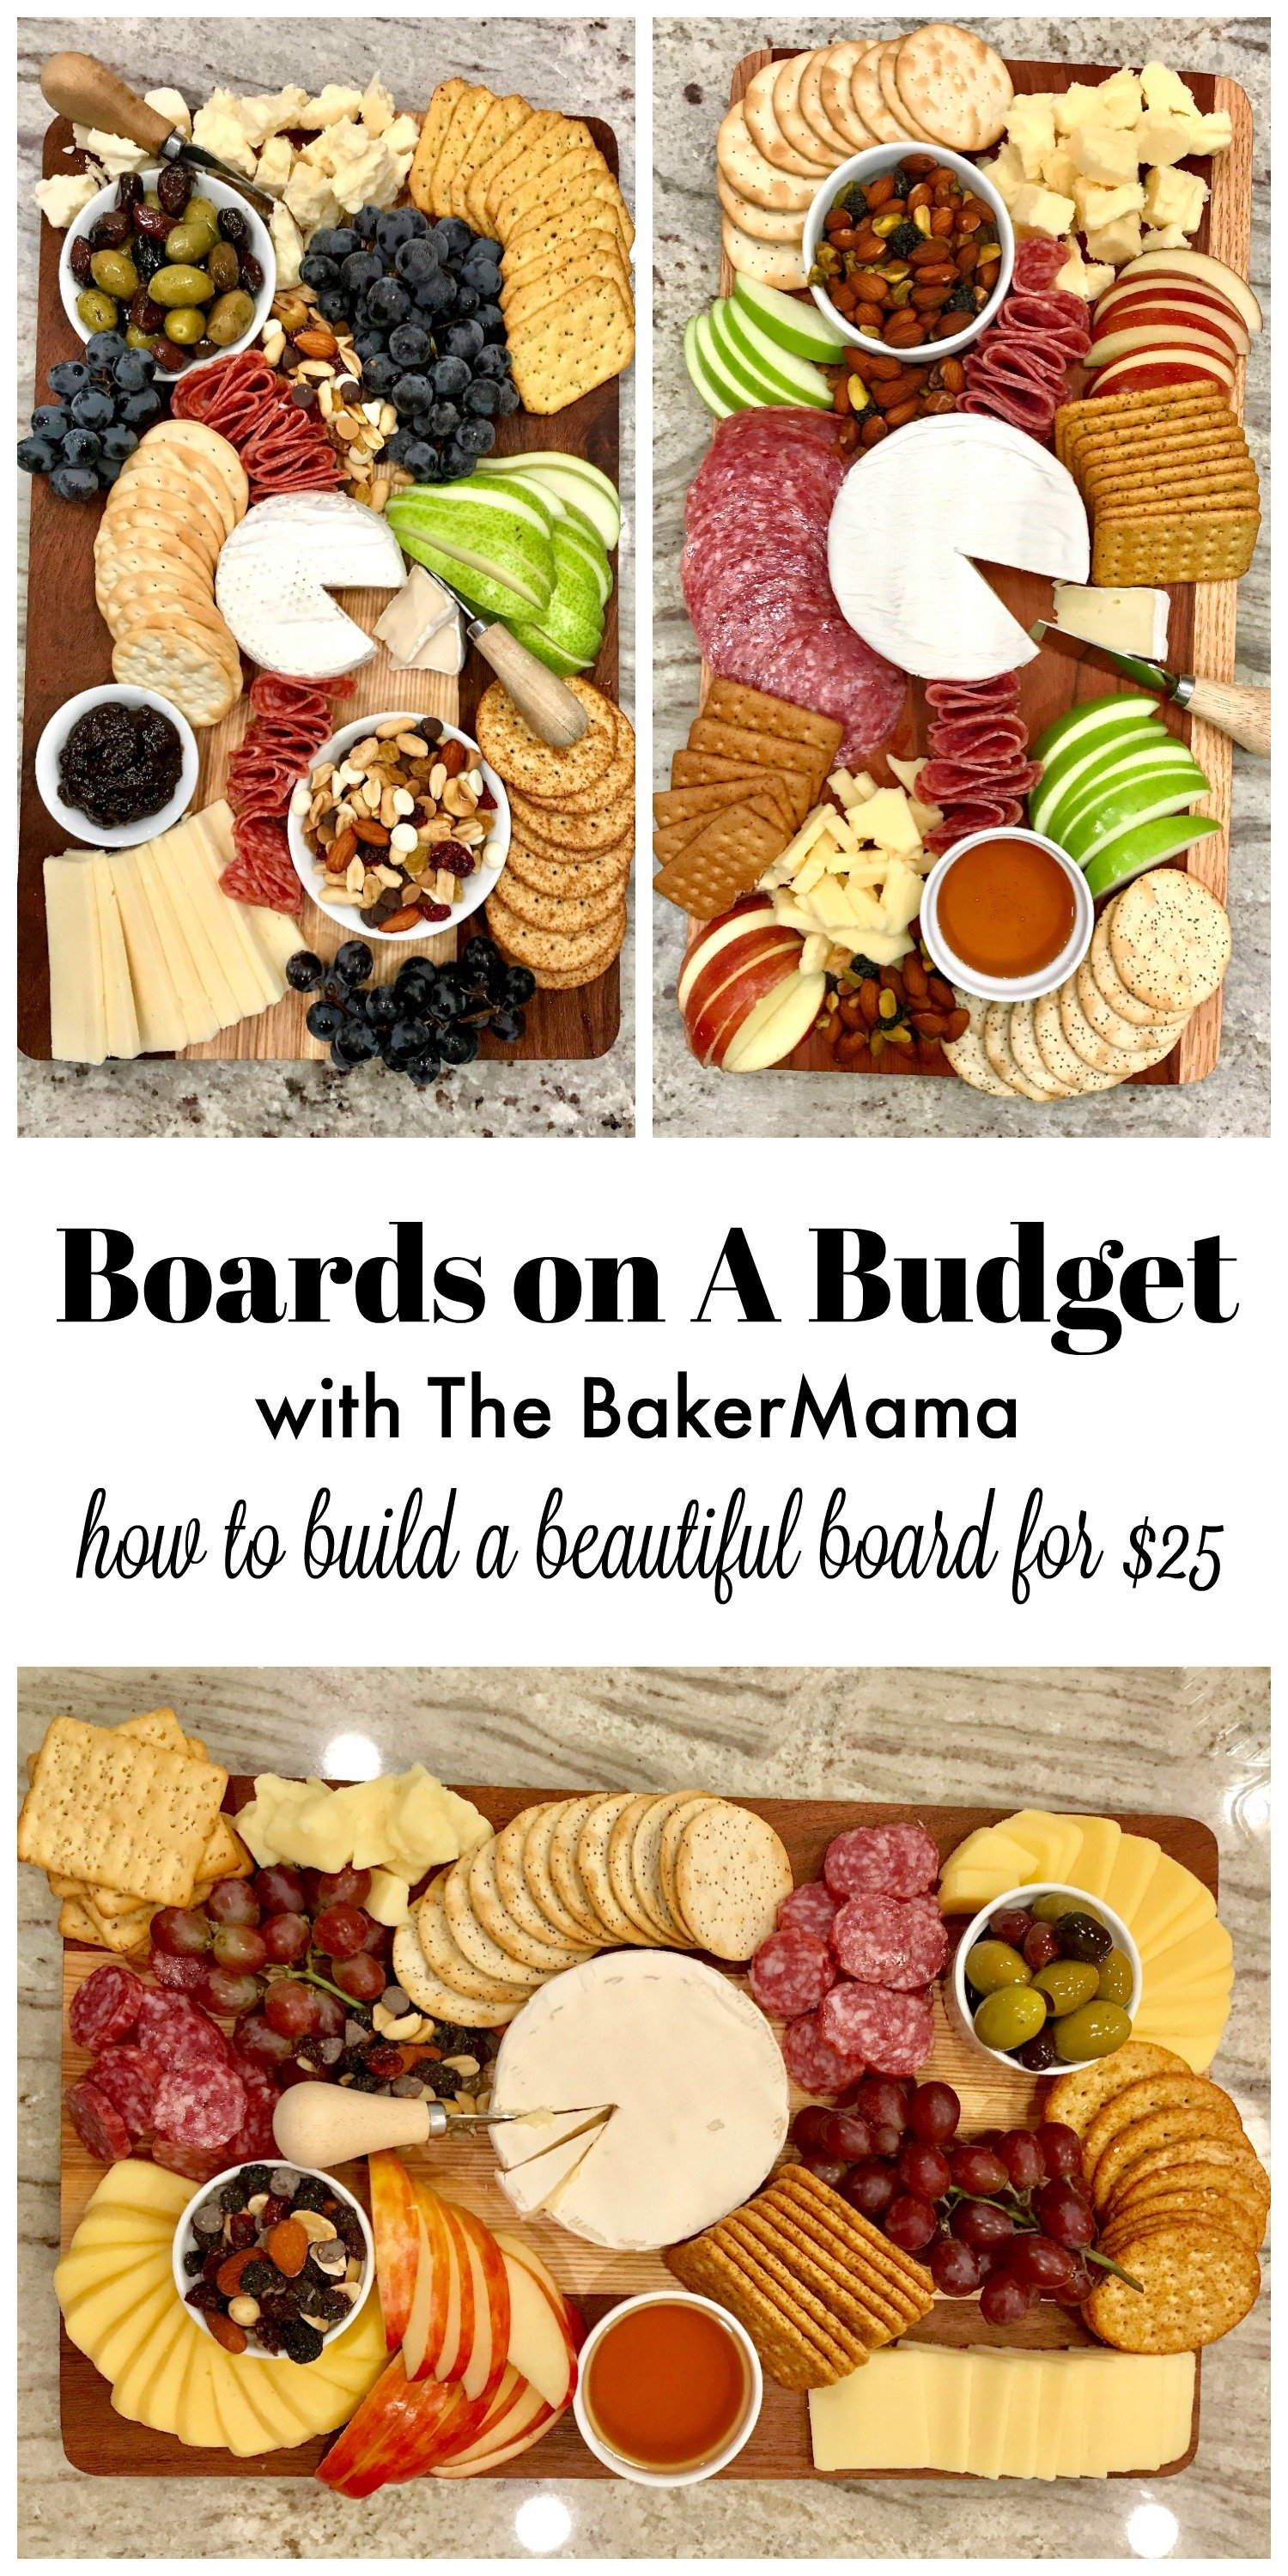 Boards On A Budget by The BakerMama